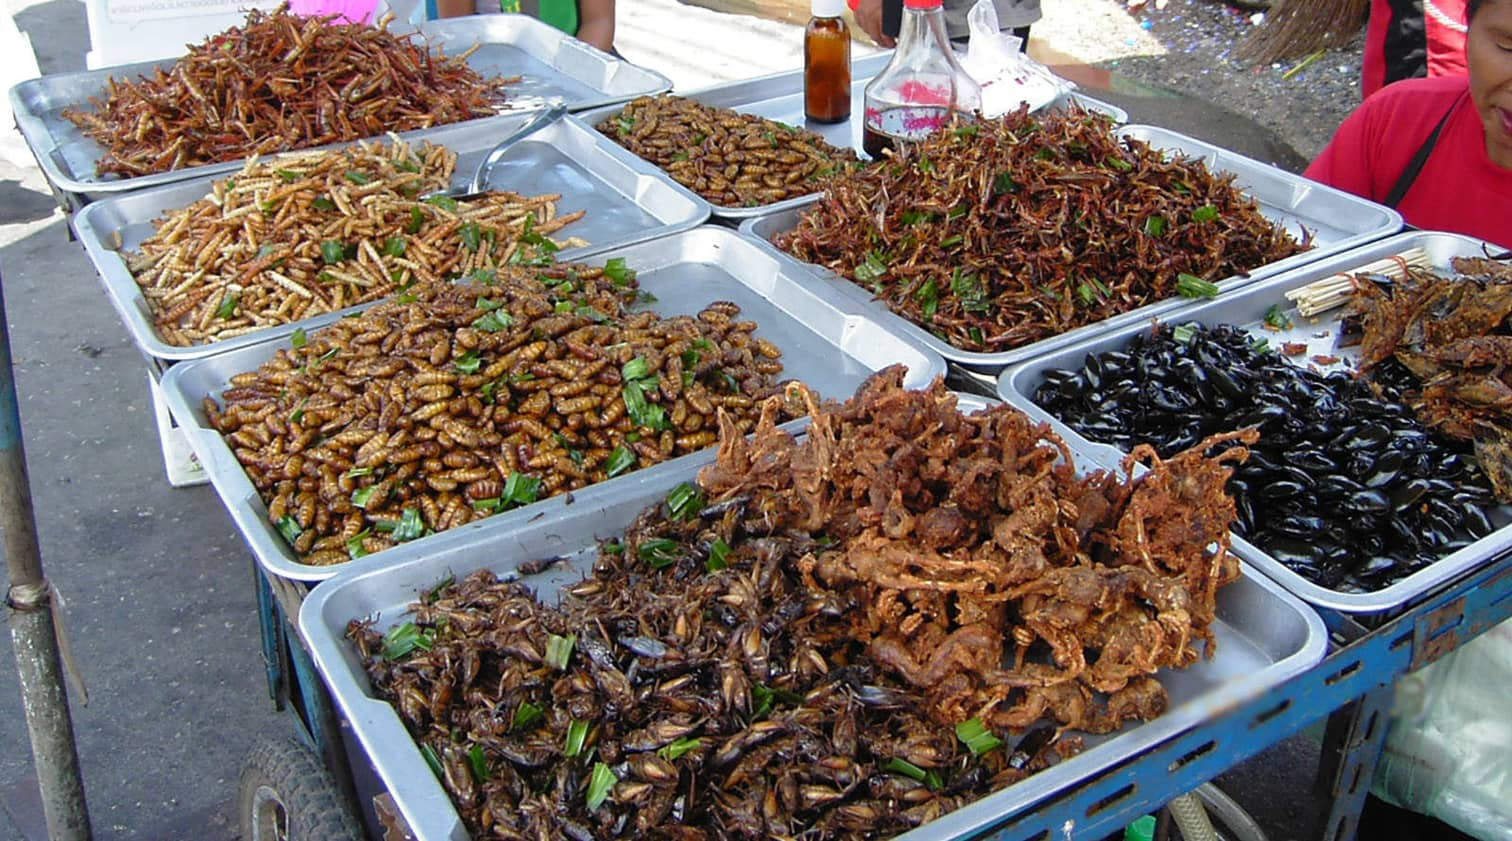 A stand with different types of insects.